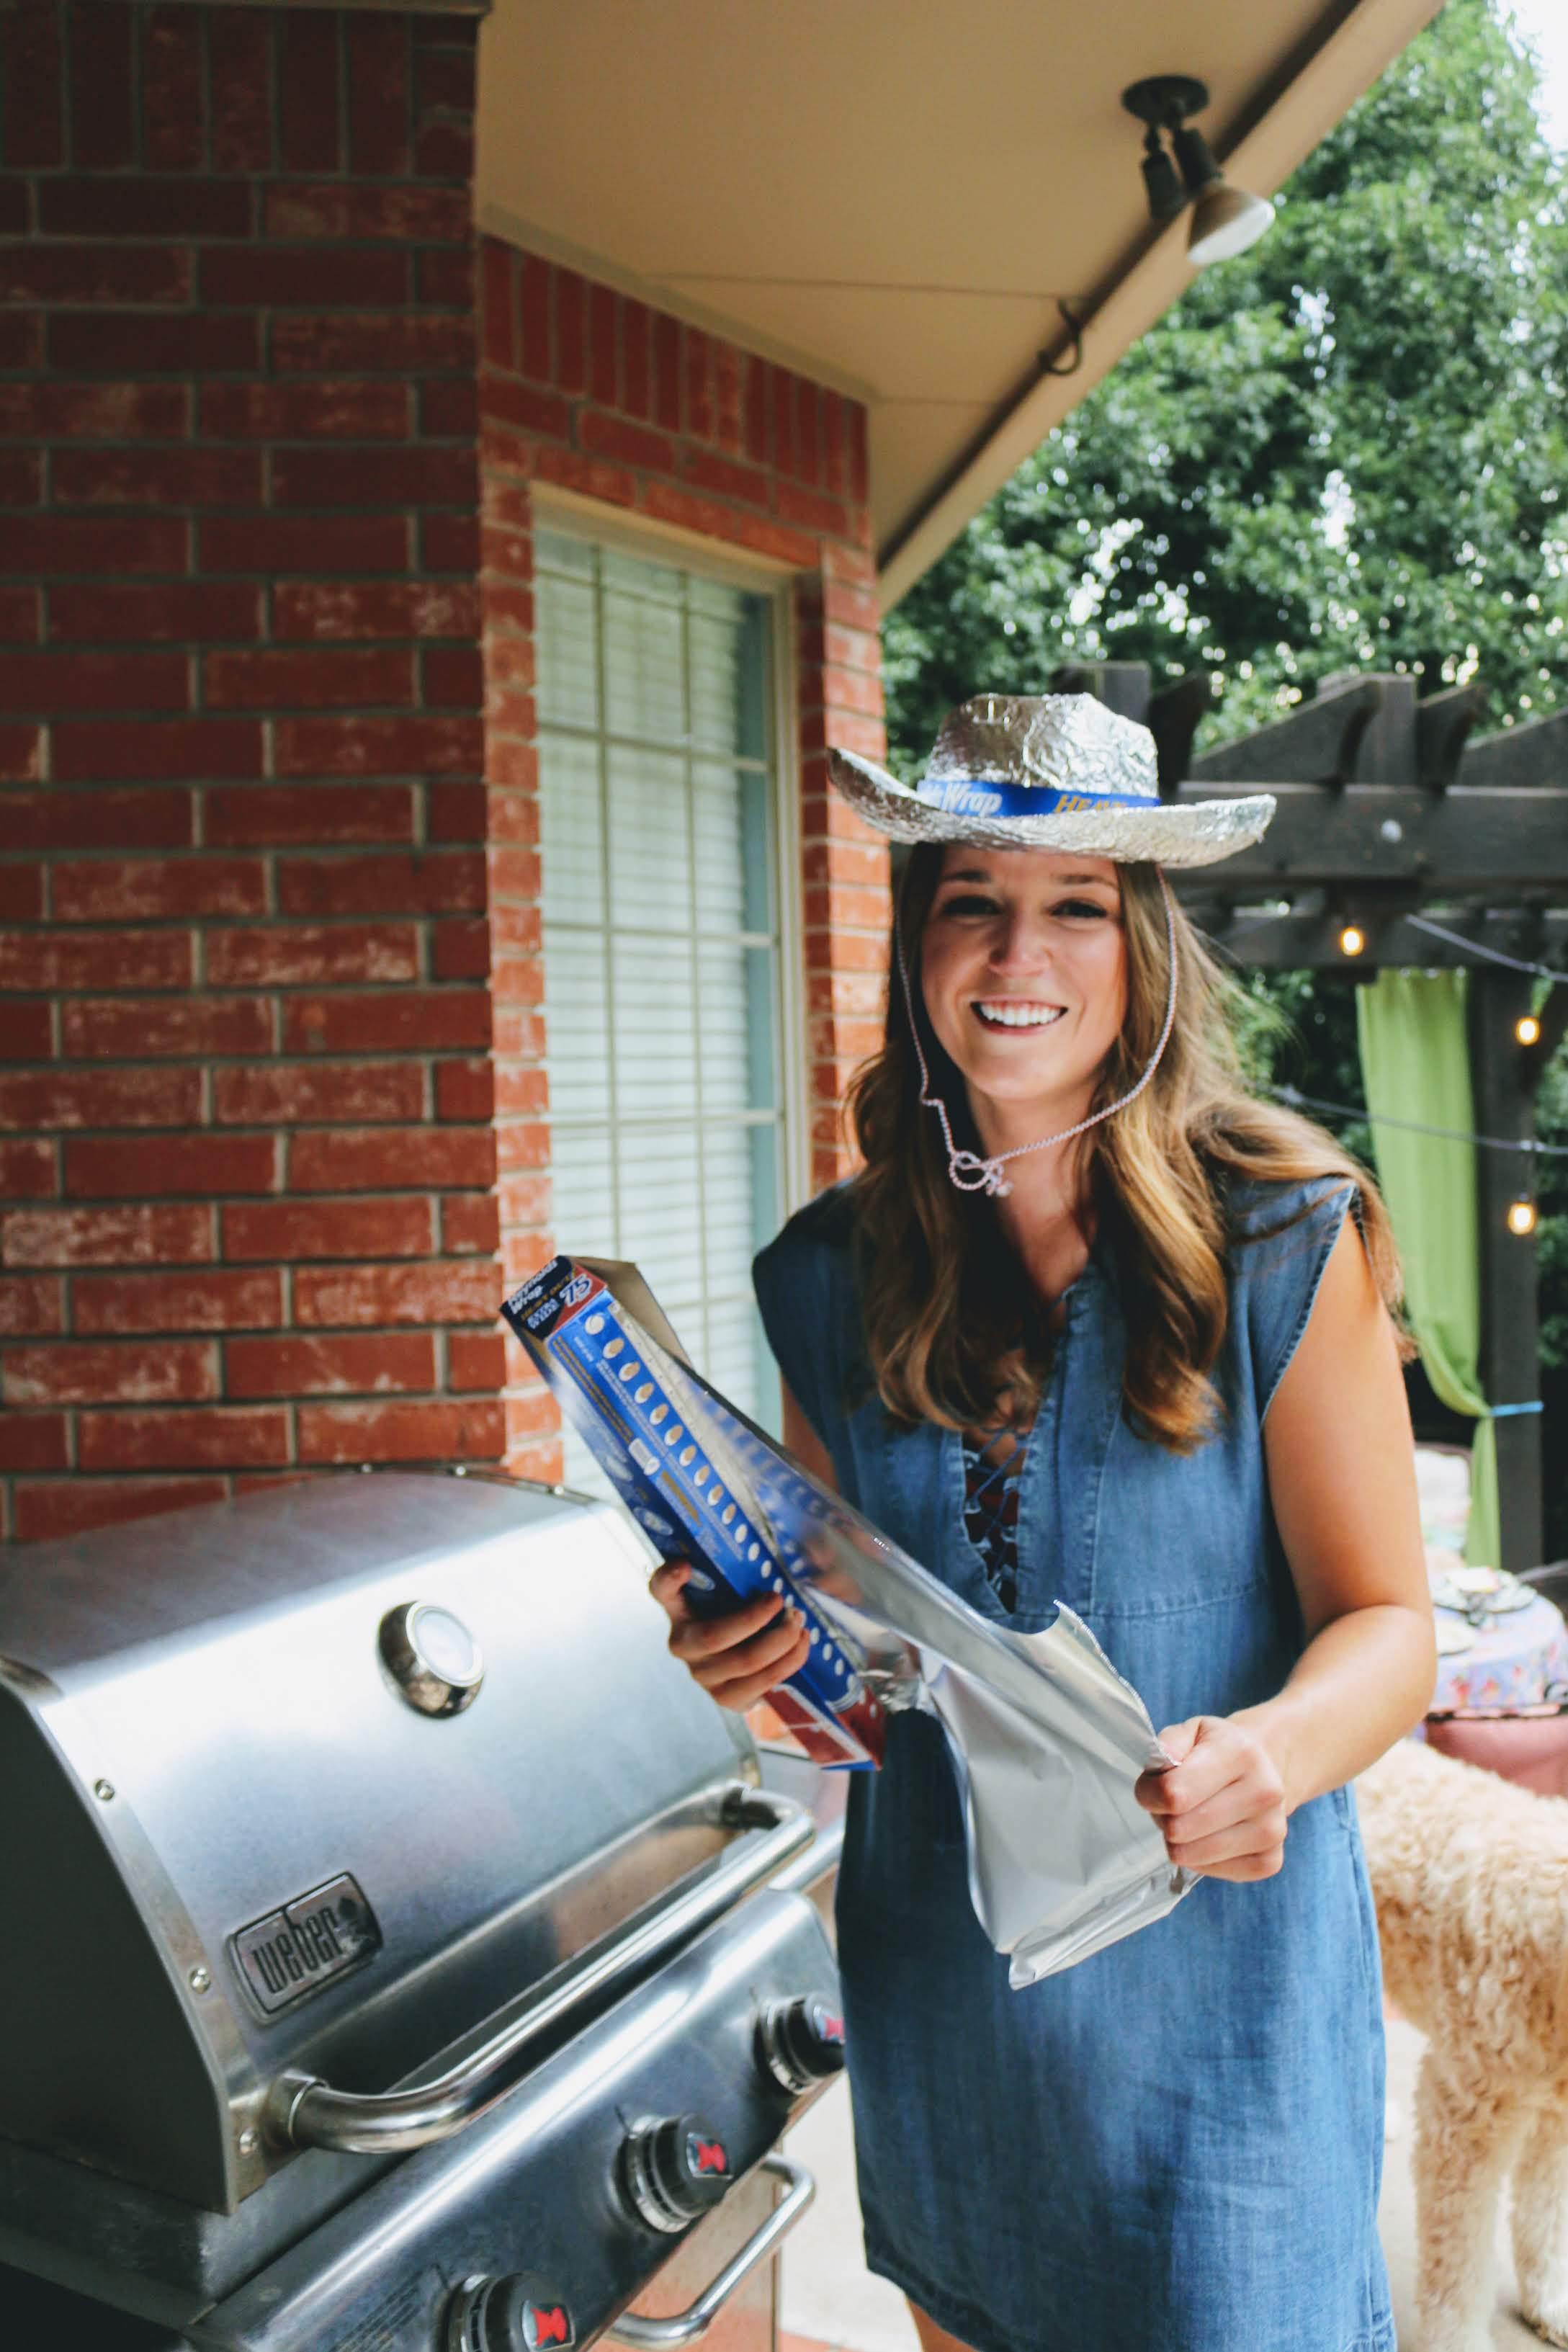 Reynolds Chief Grilling Officer (CGO) Winner